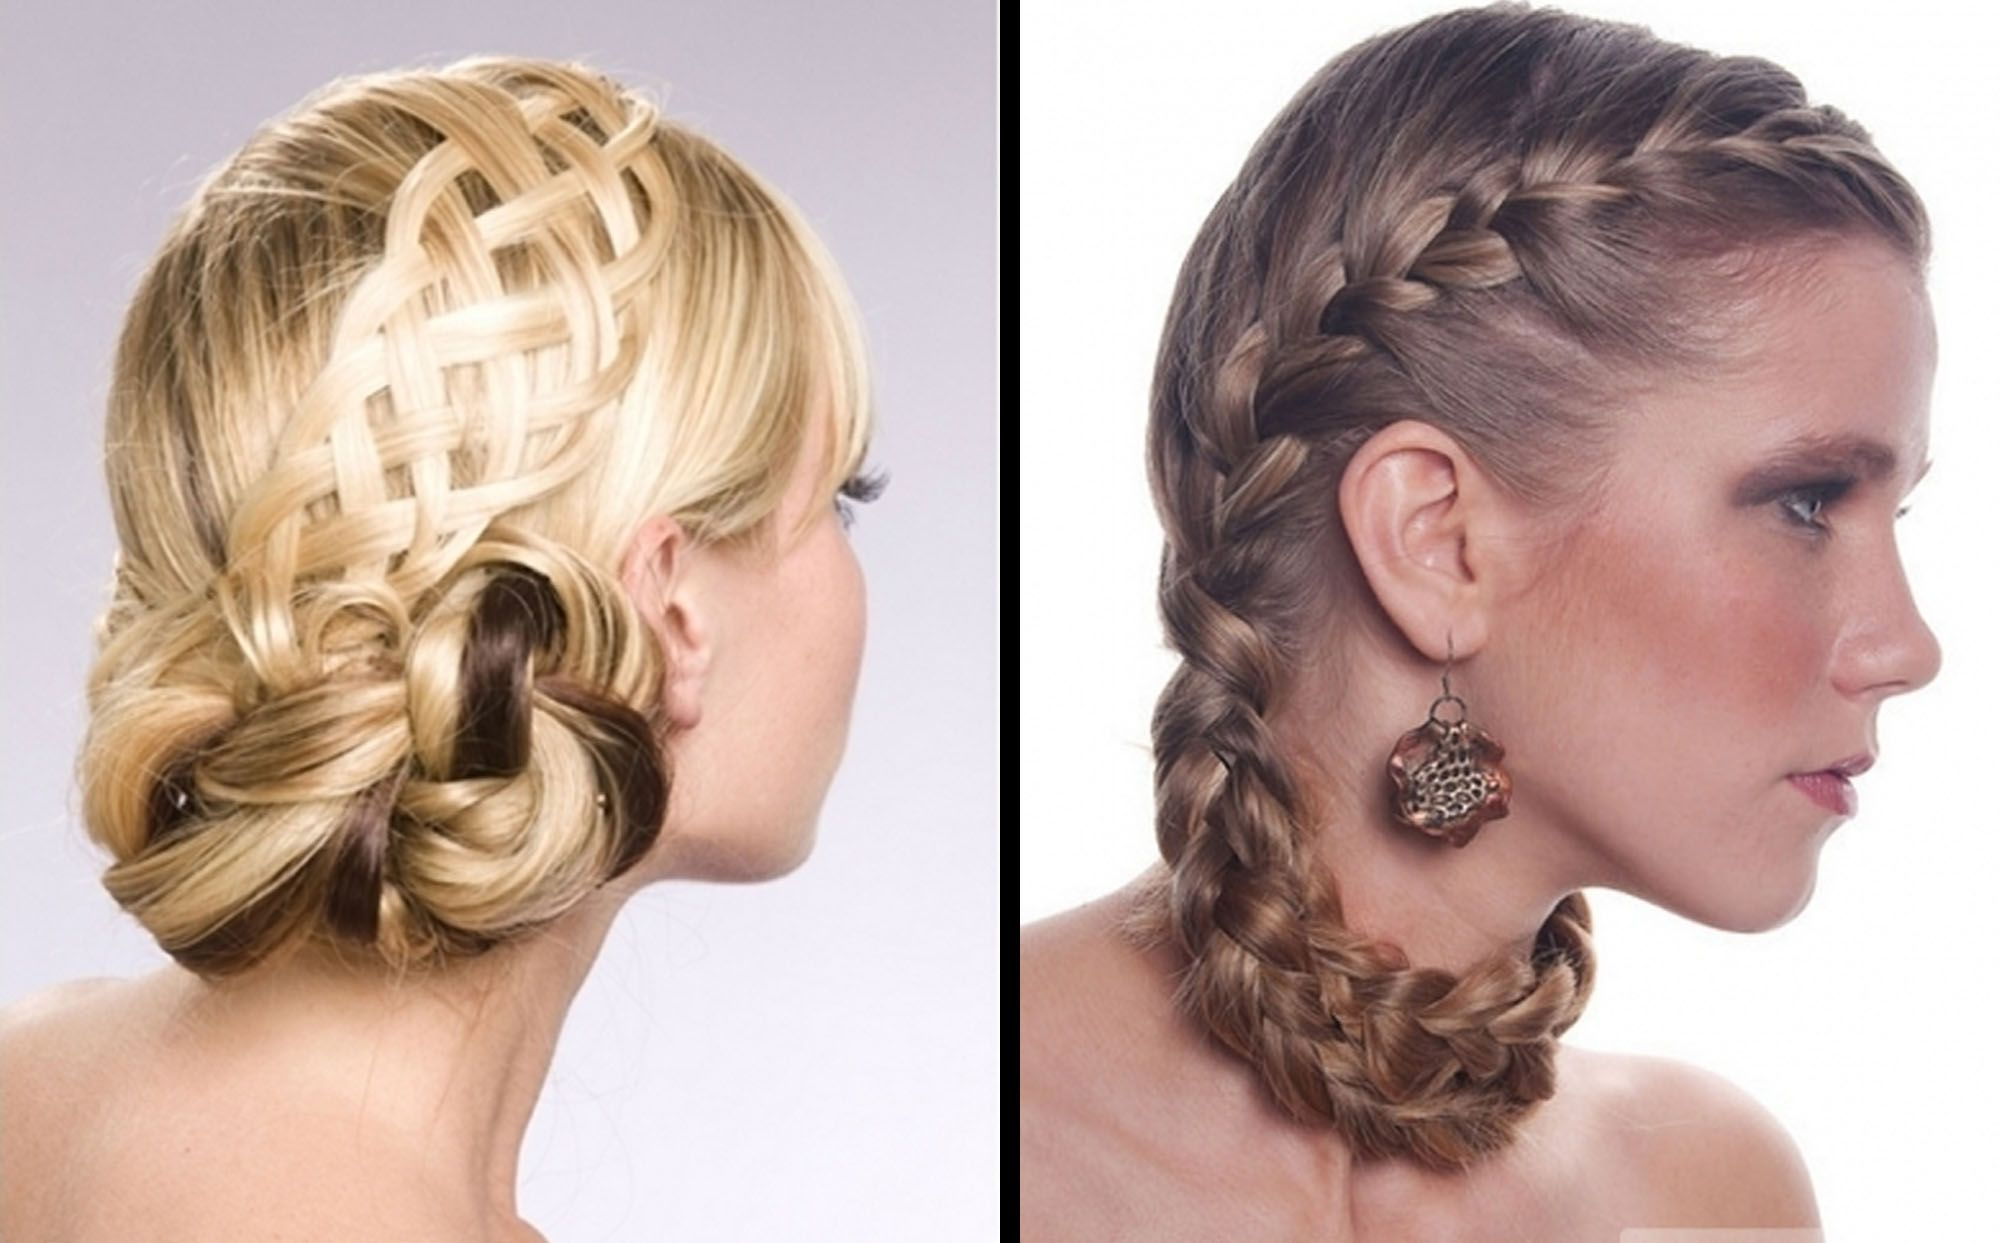 Peachy 1000 Images About Hair Styles On Pinterest Wedding Hairstyles Hairstyles For Men Maxibearus